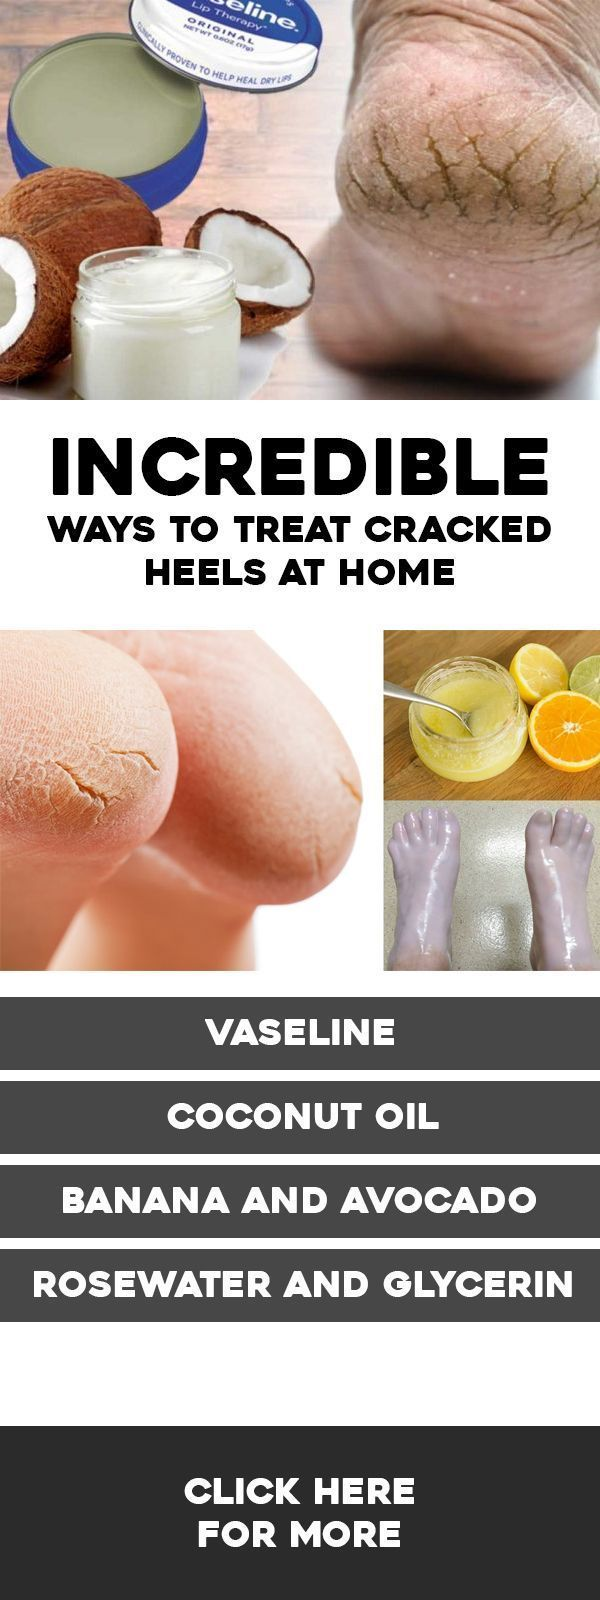 Cracked heels are a common problem. As survey claims, more than 20% of all the adults in the US have cracked skin on their feet. Besides, adults are not the only ones who face this problem, #HardSkin #HardSkinBakingSoda #crackedskinonheels